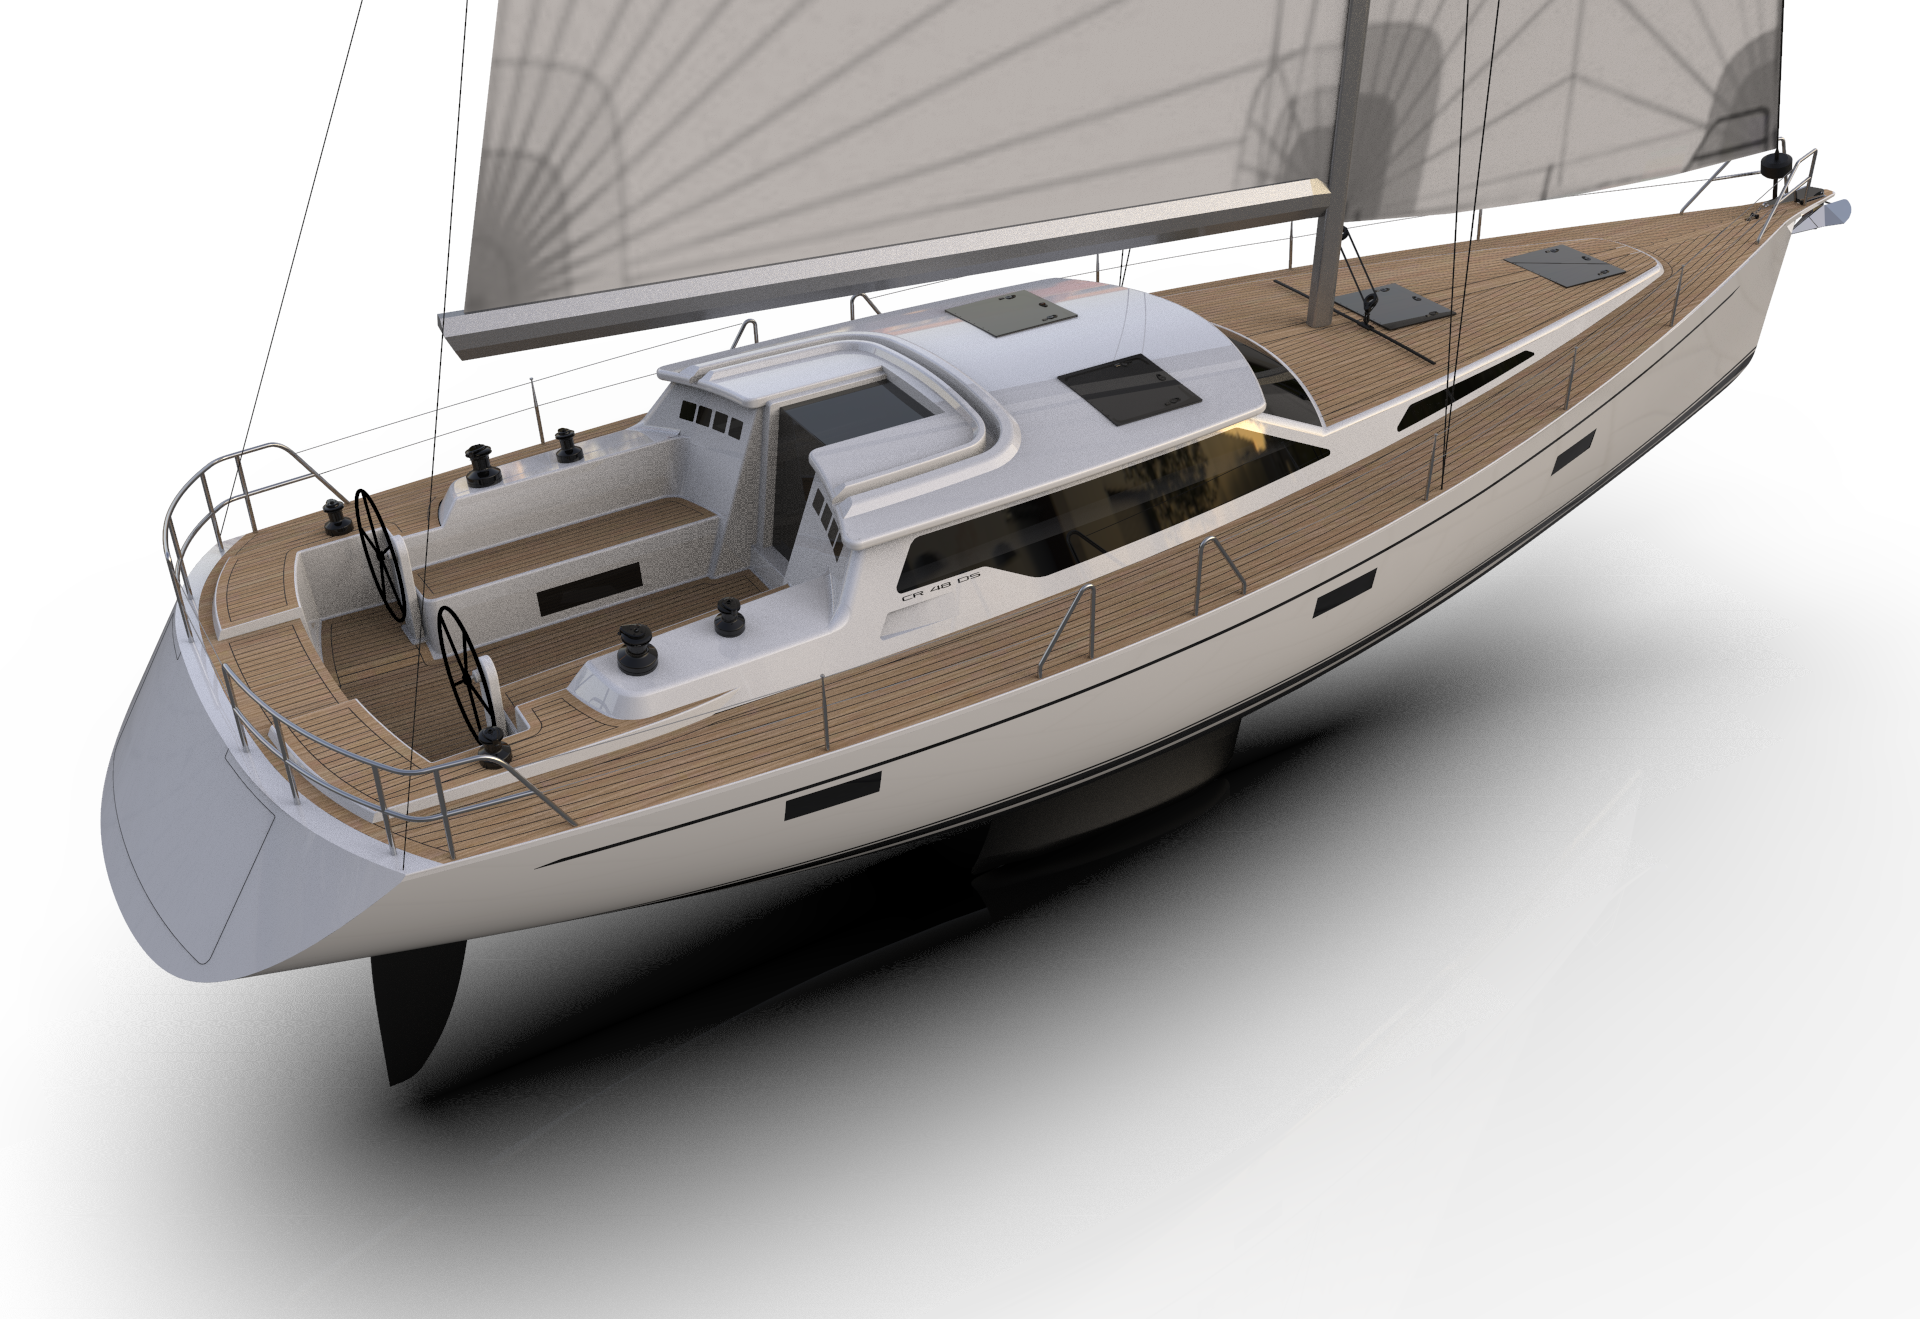 A new flagship from CR Yachts - The 490 Deck Saloon